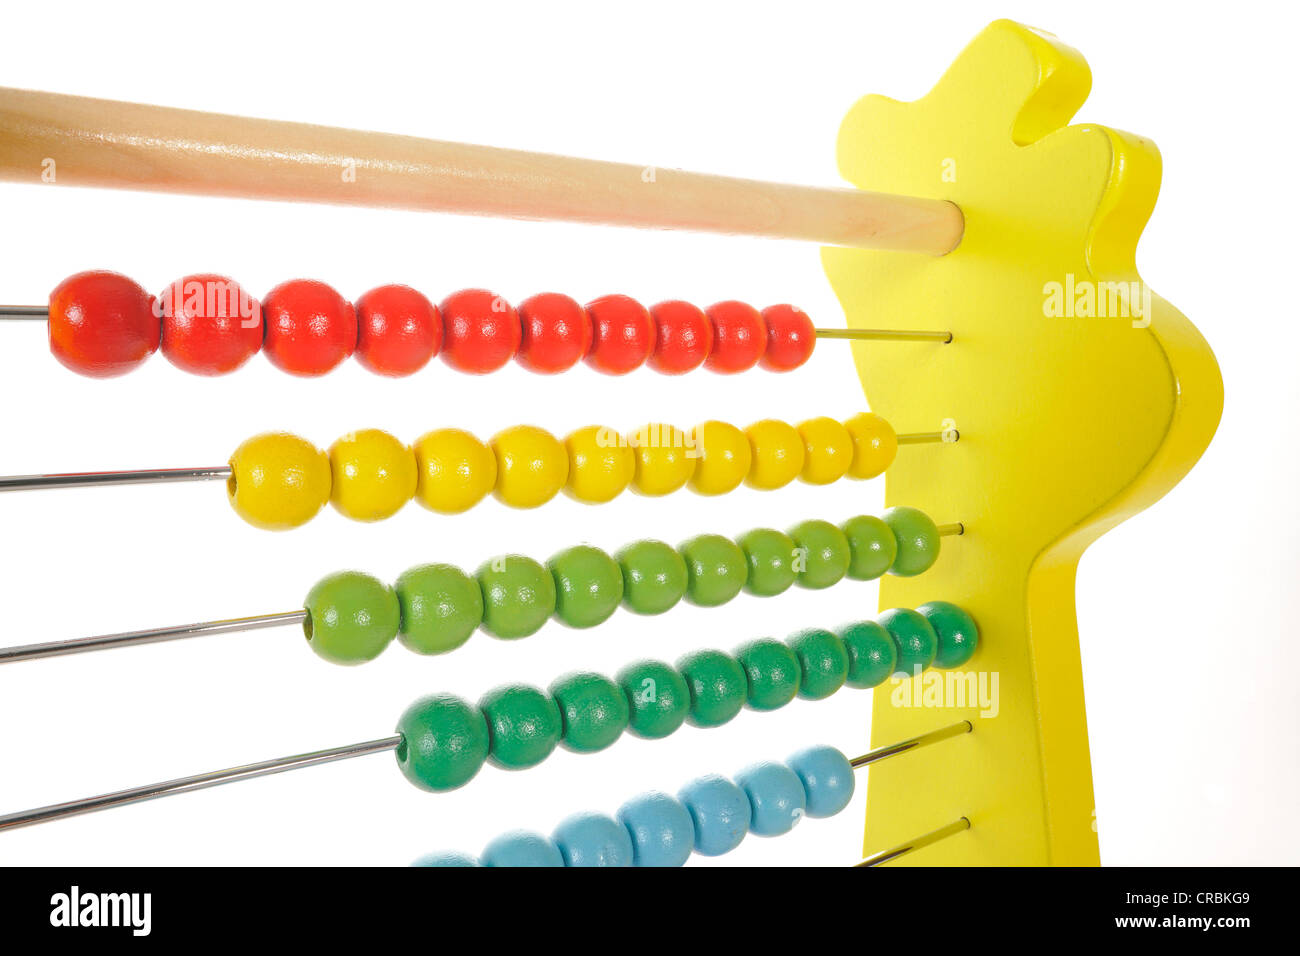 Abacus calculation tool - Stock Image